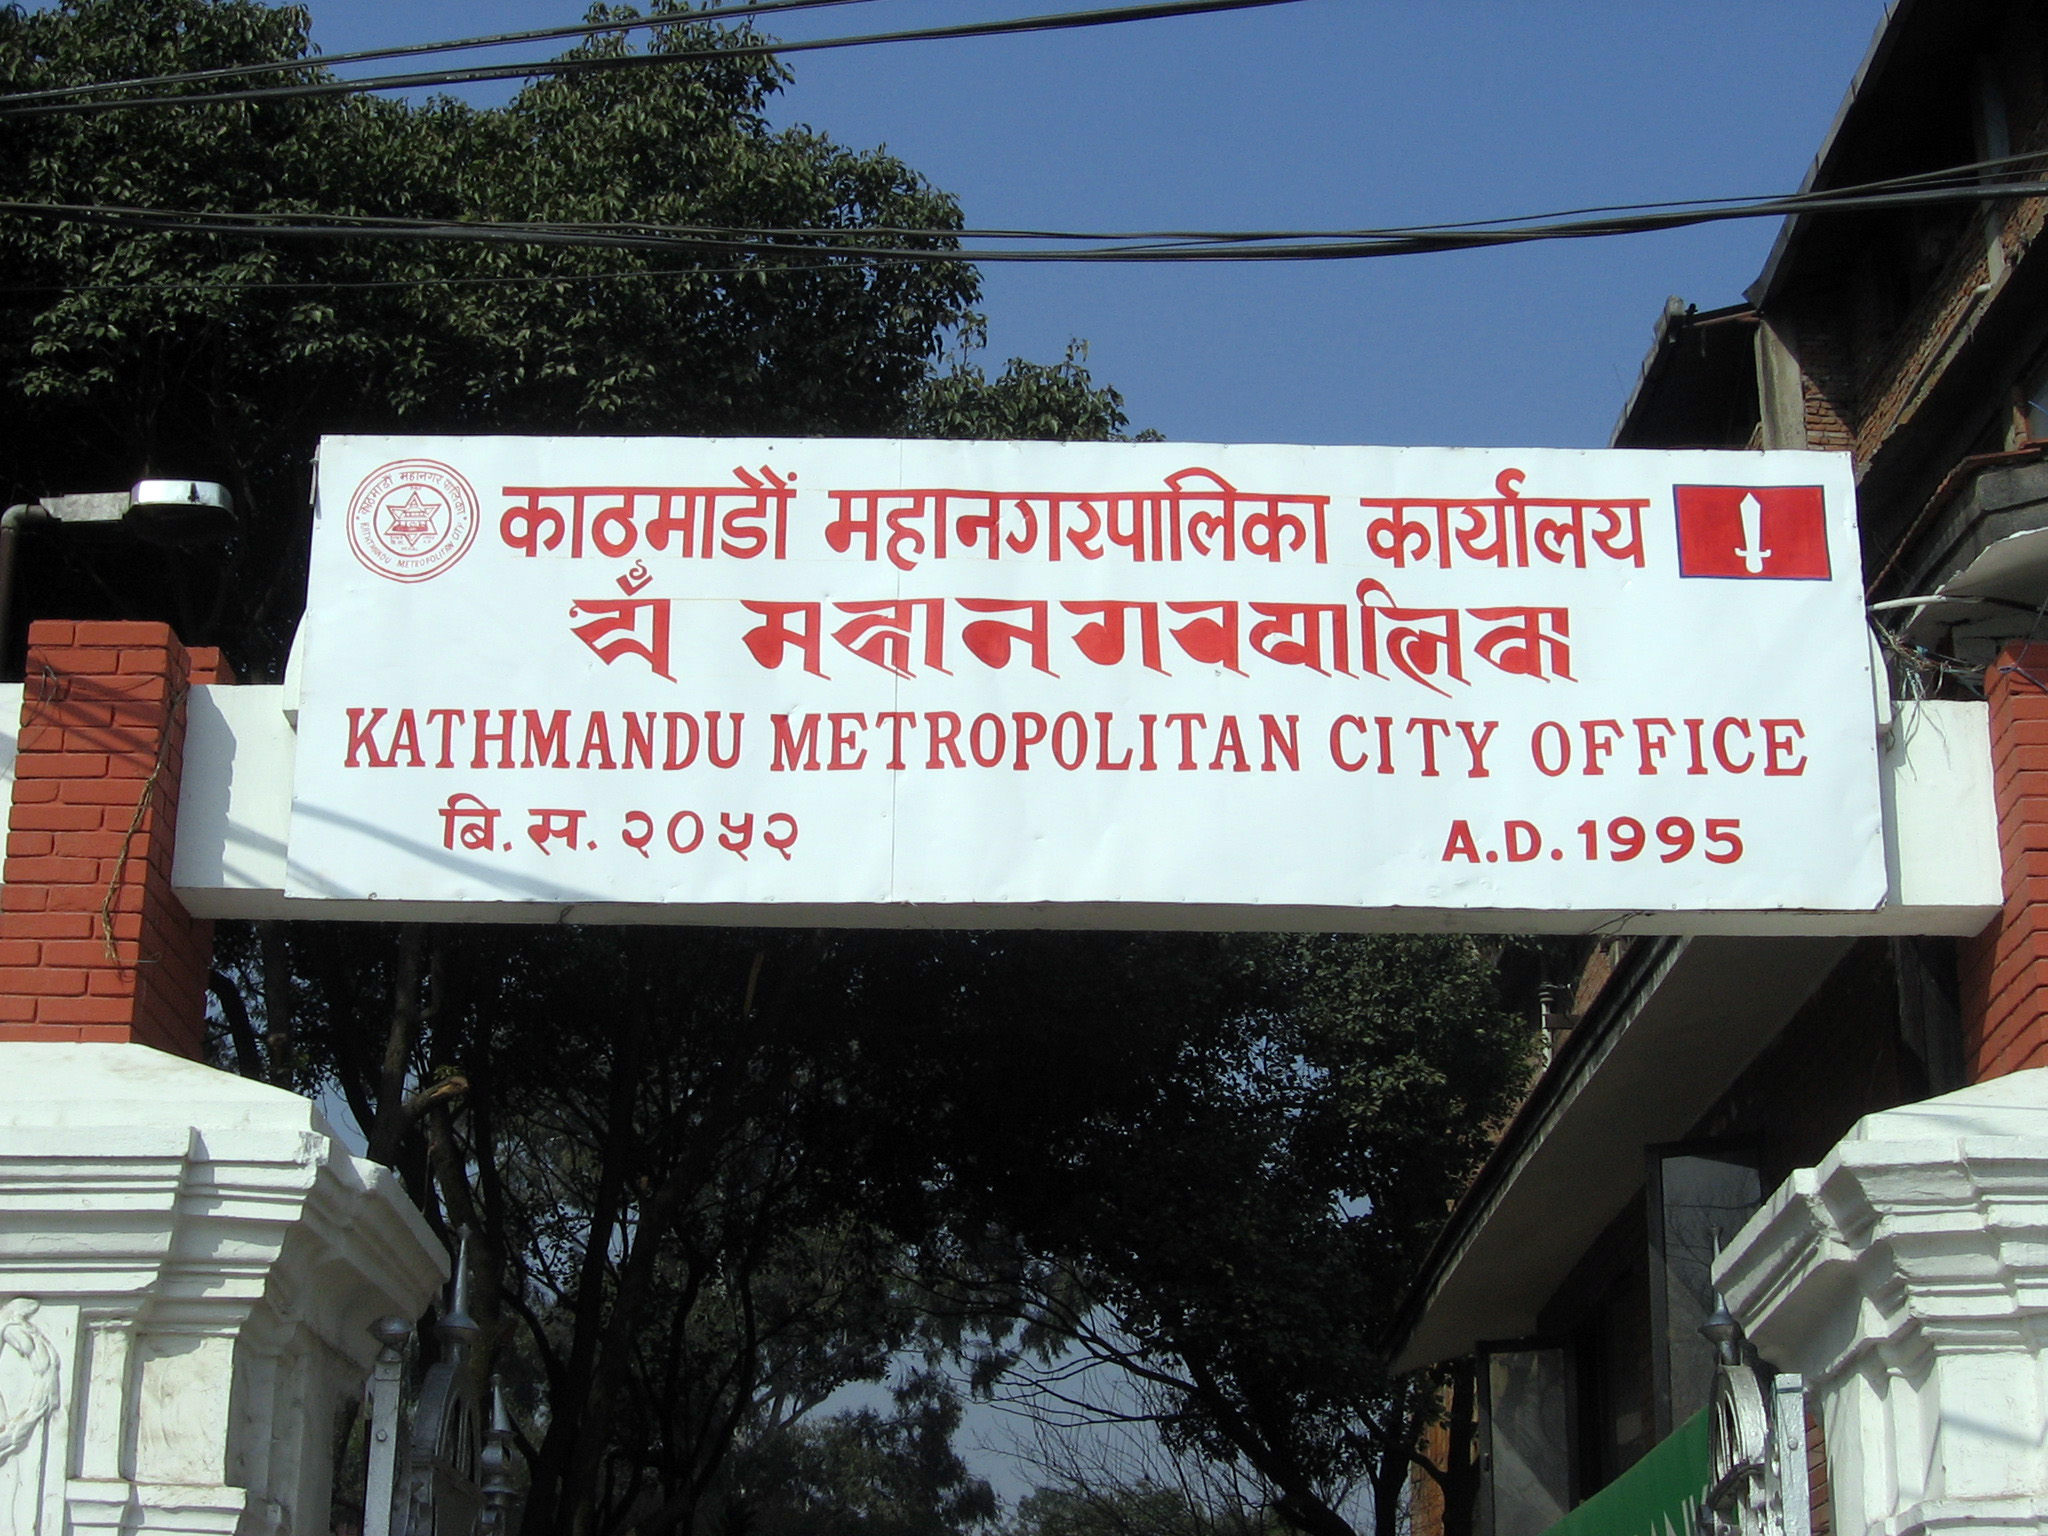 Source: www.tendersontime.com Fig: Kathmandu Metropolitan City Office